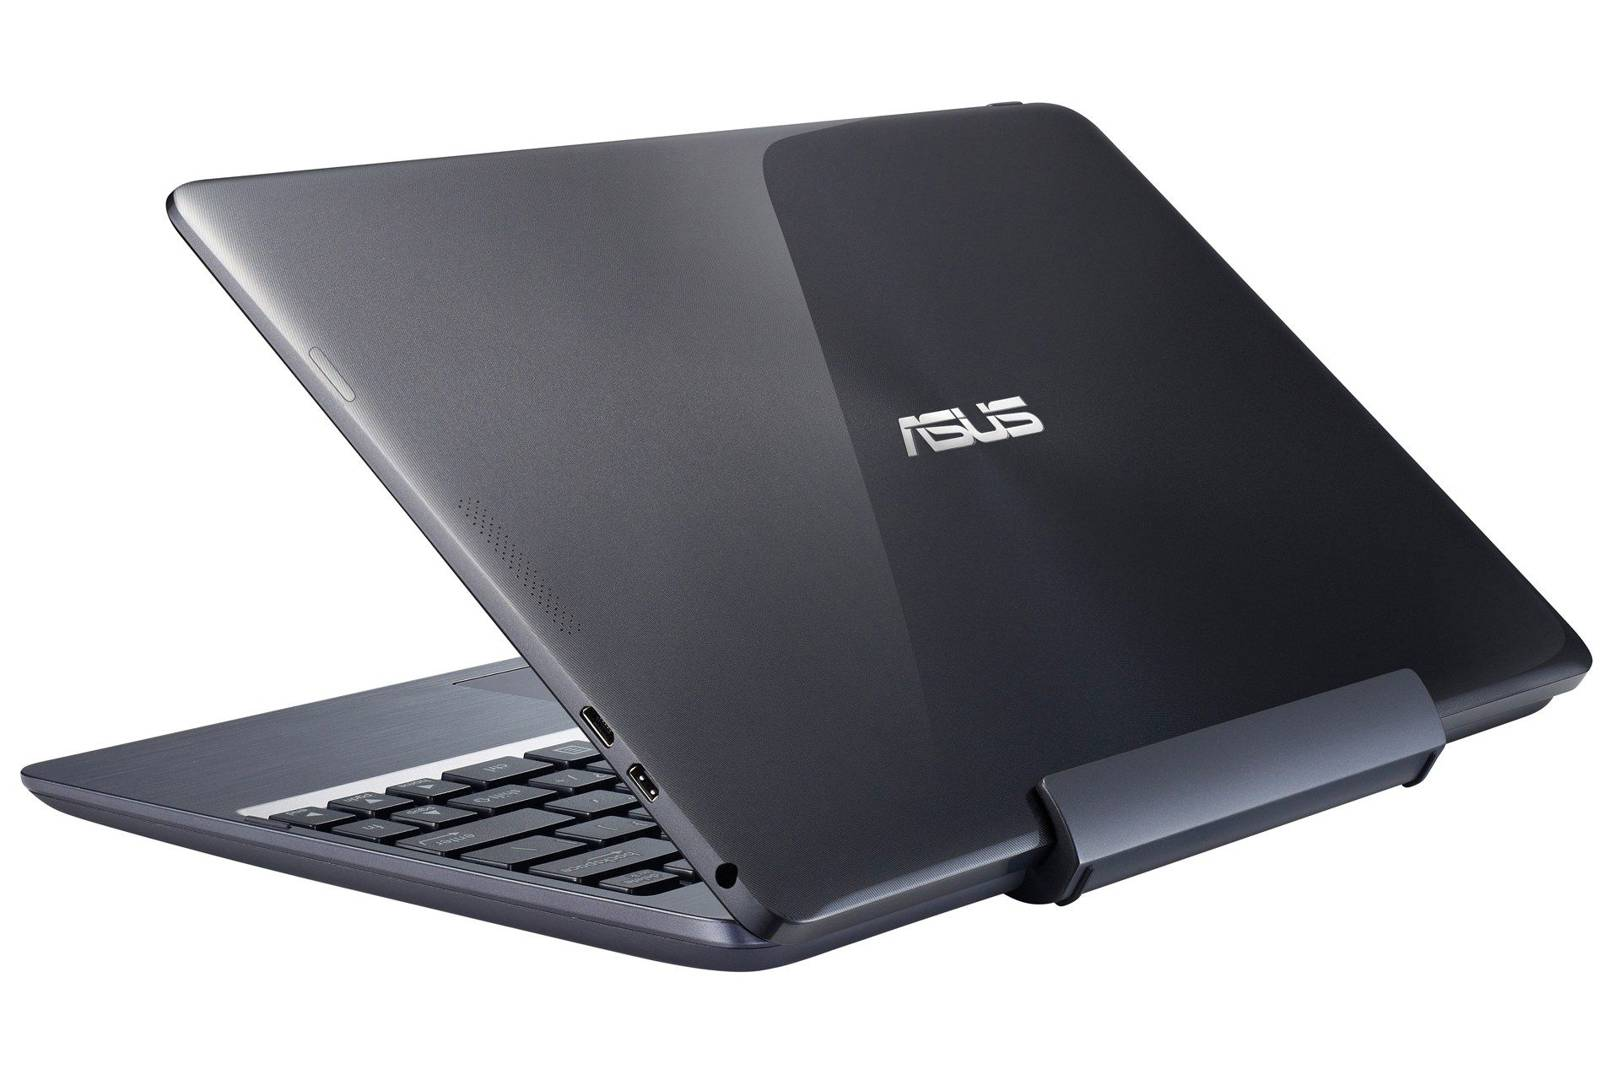 Asus Transformer Book T100 review - Specs, performance, best